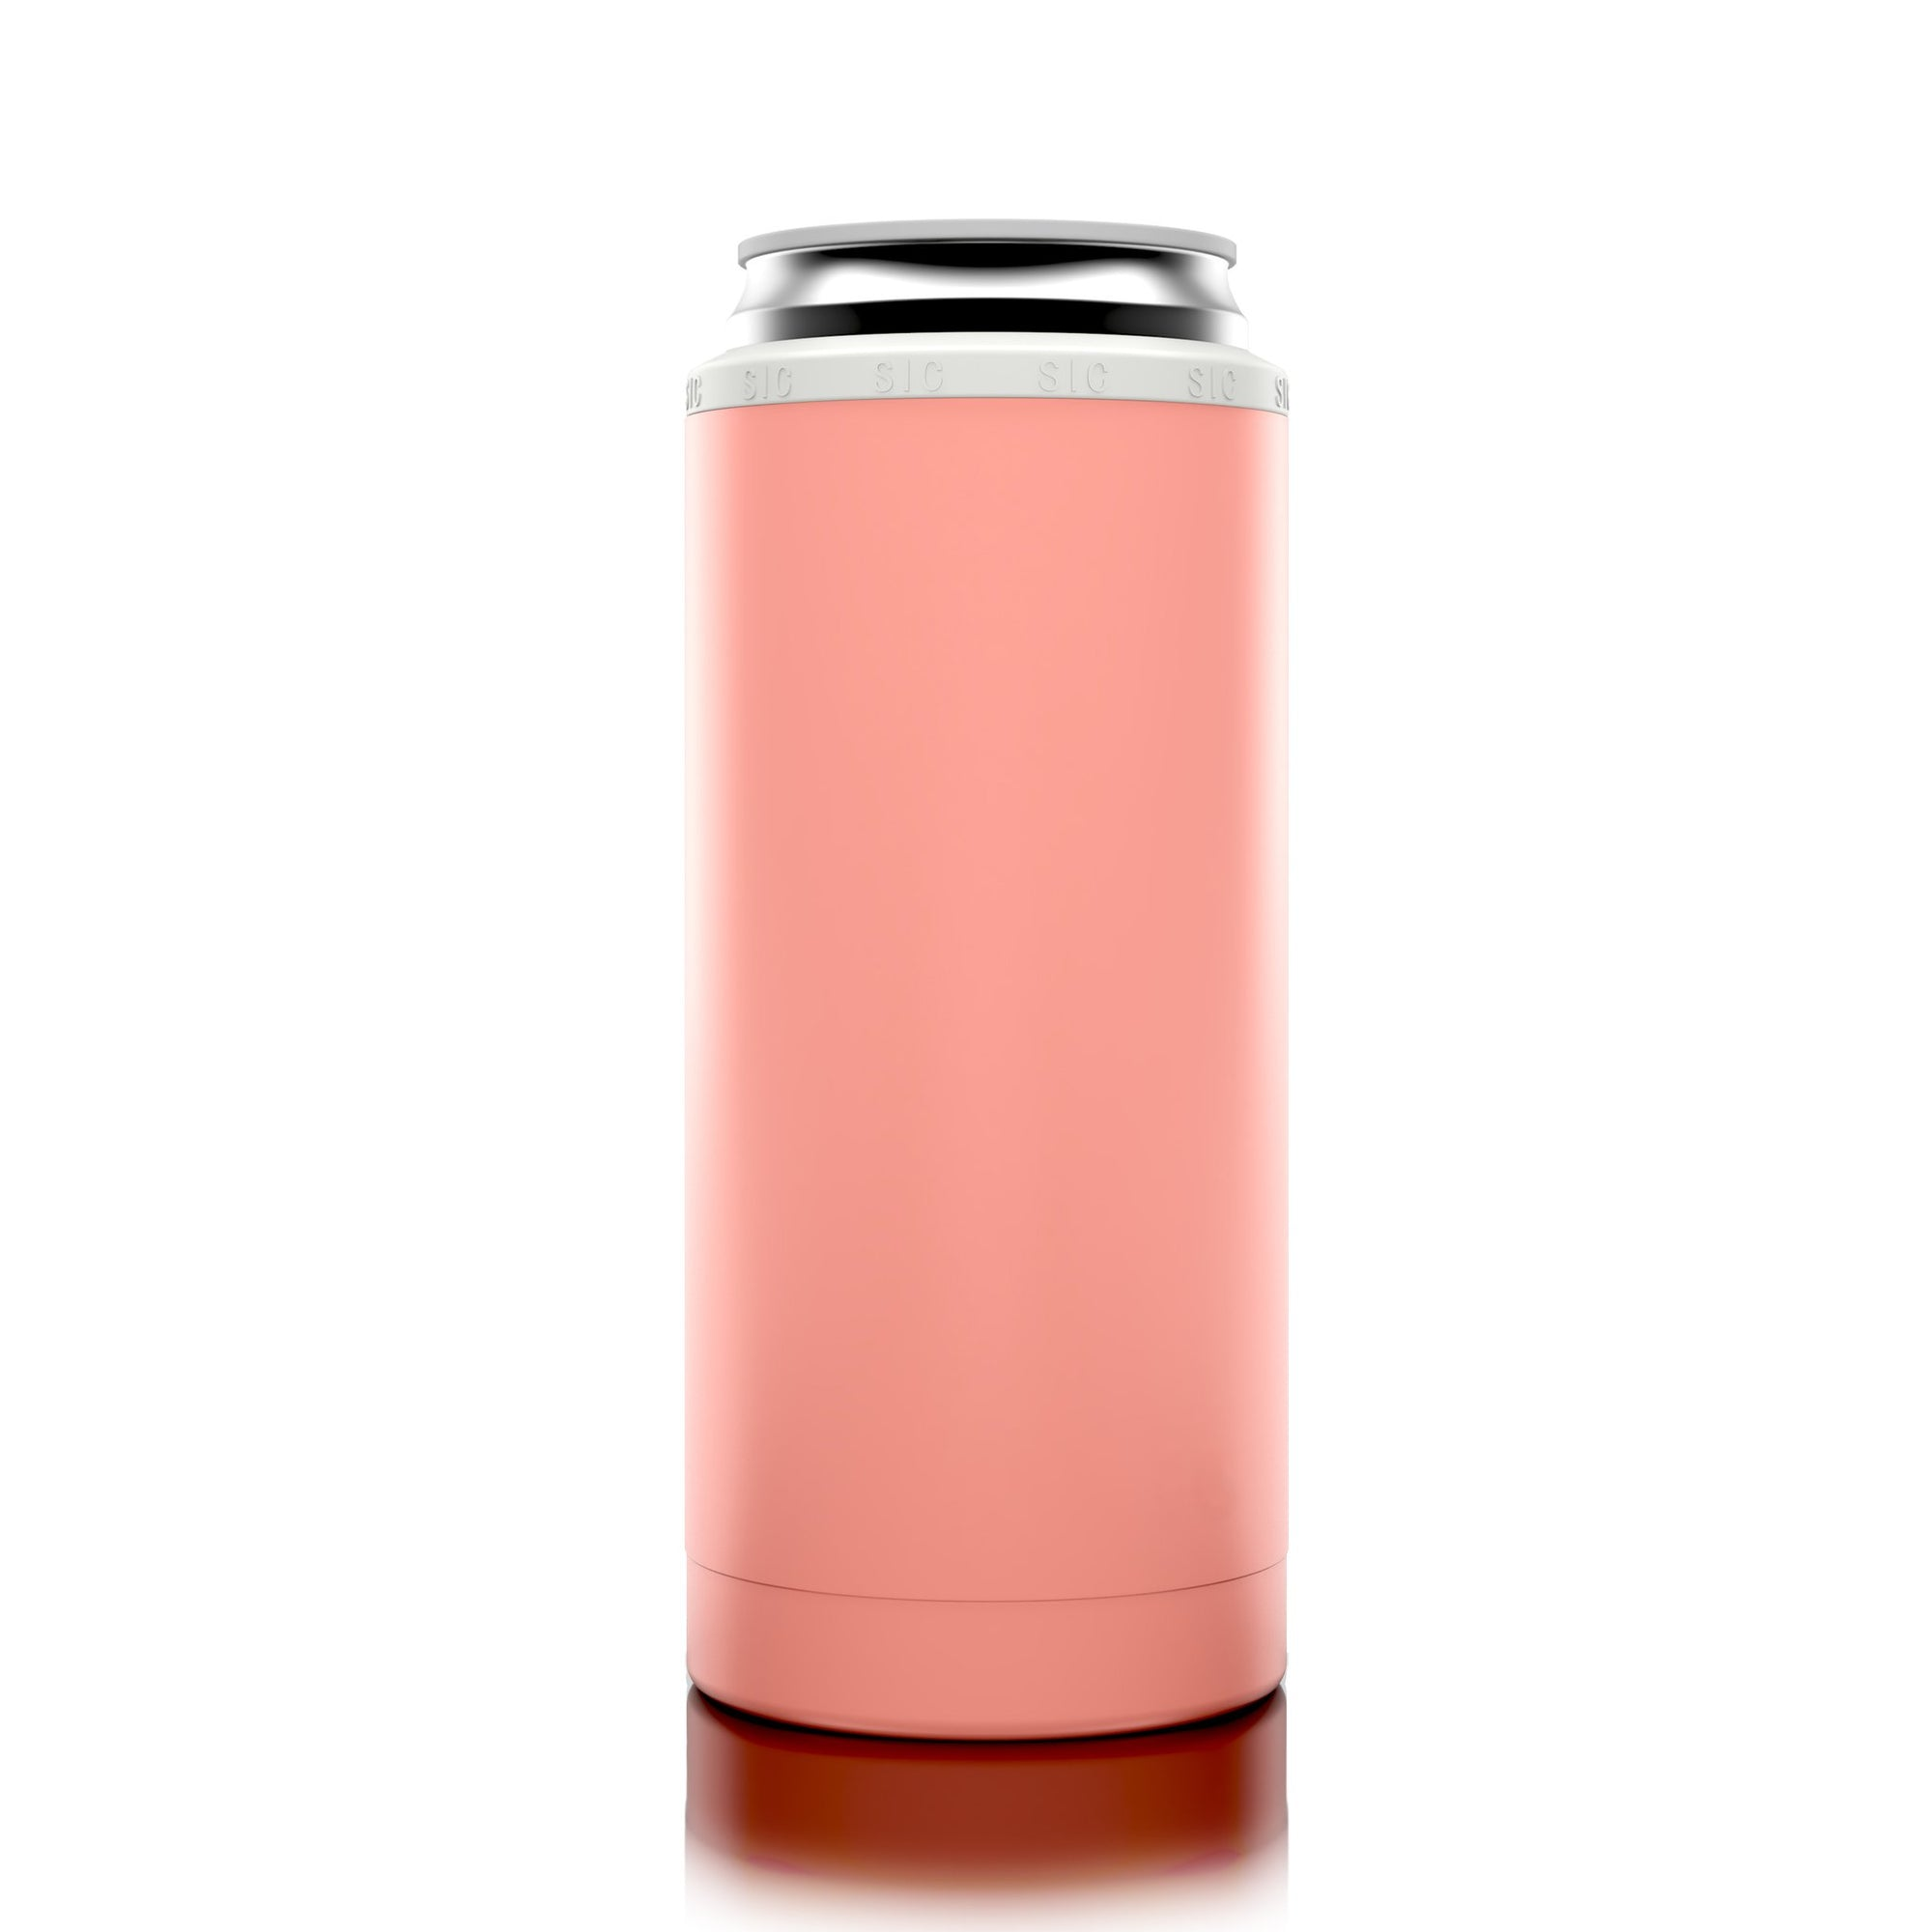 Copy of SIC Slim Can Cooler - Matte Coral